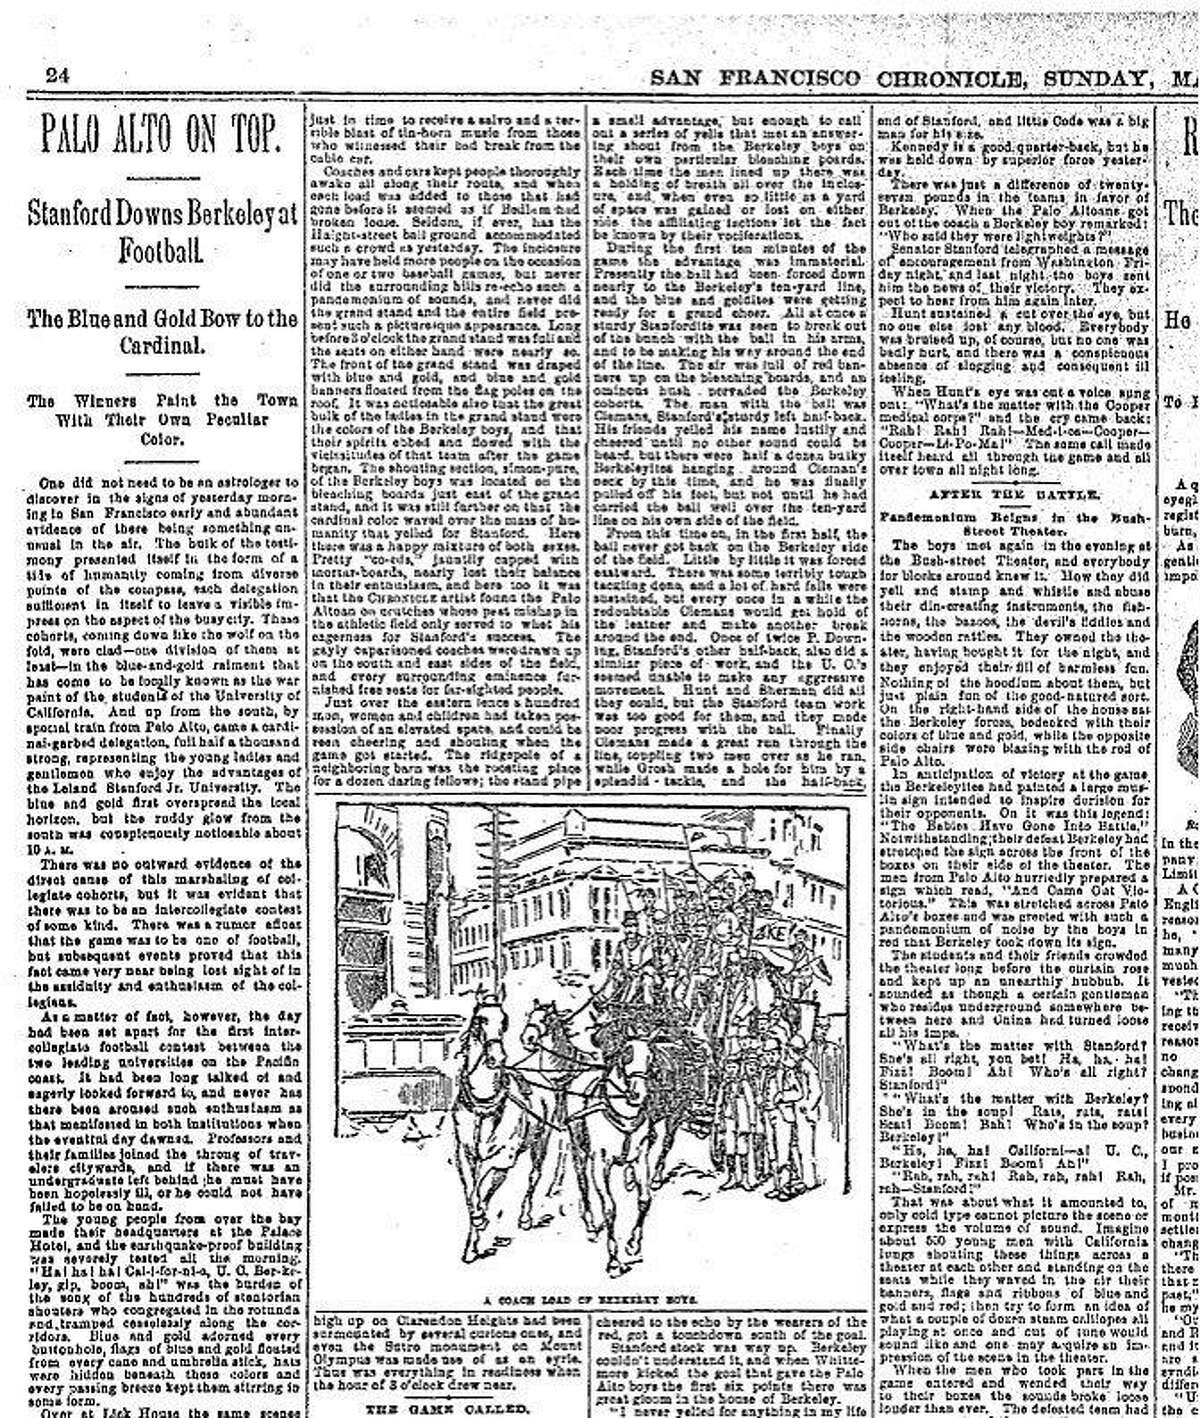 Chronicle coverage of the first Big Game between Stanford and Cal March 19, 1892